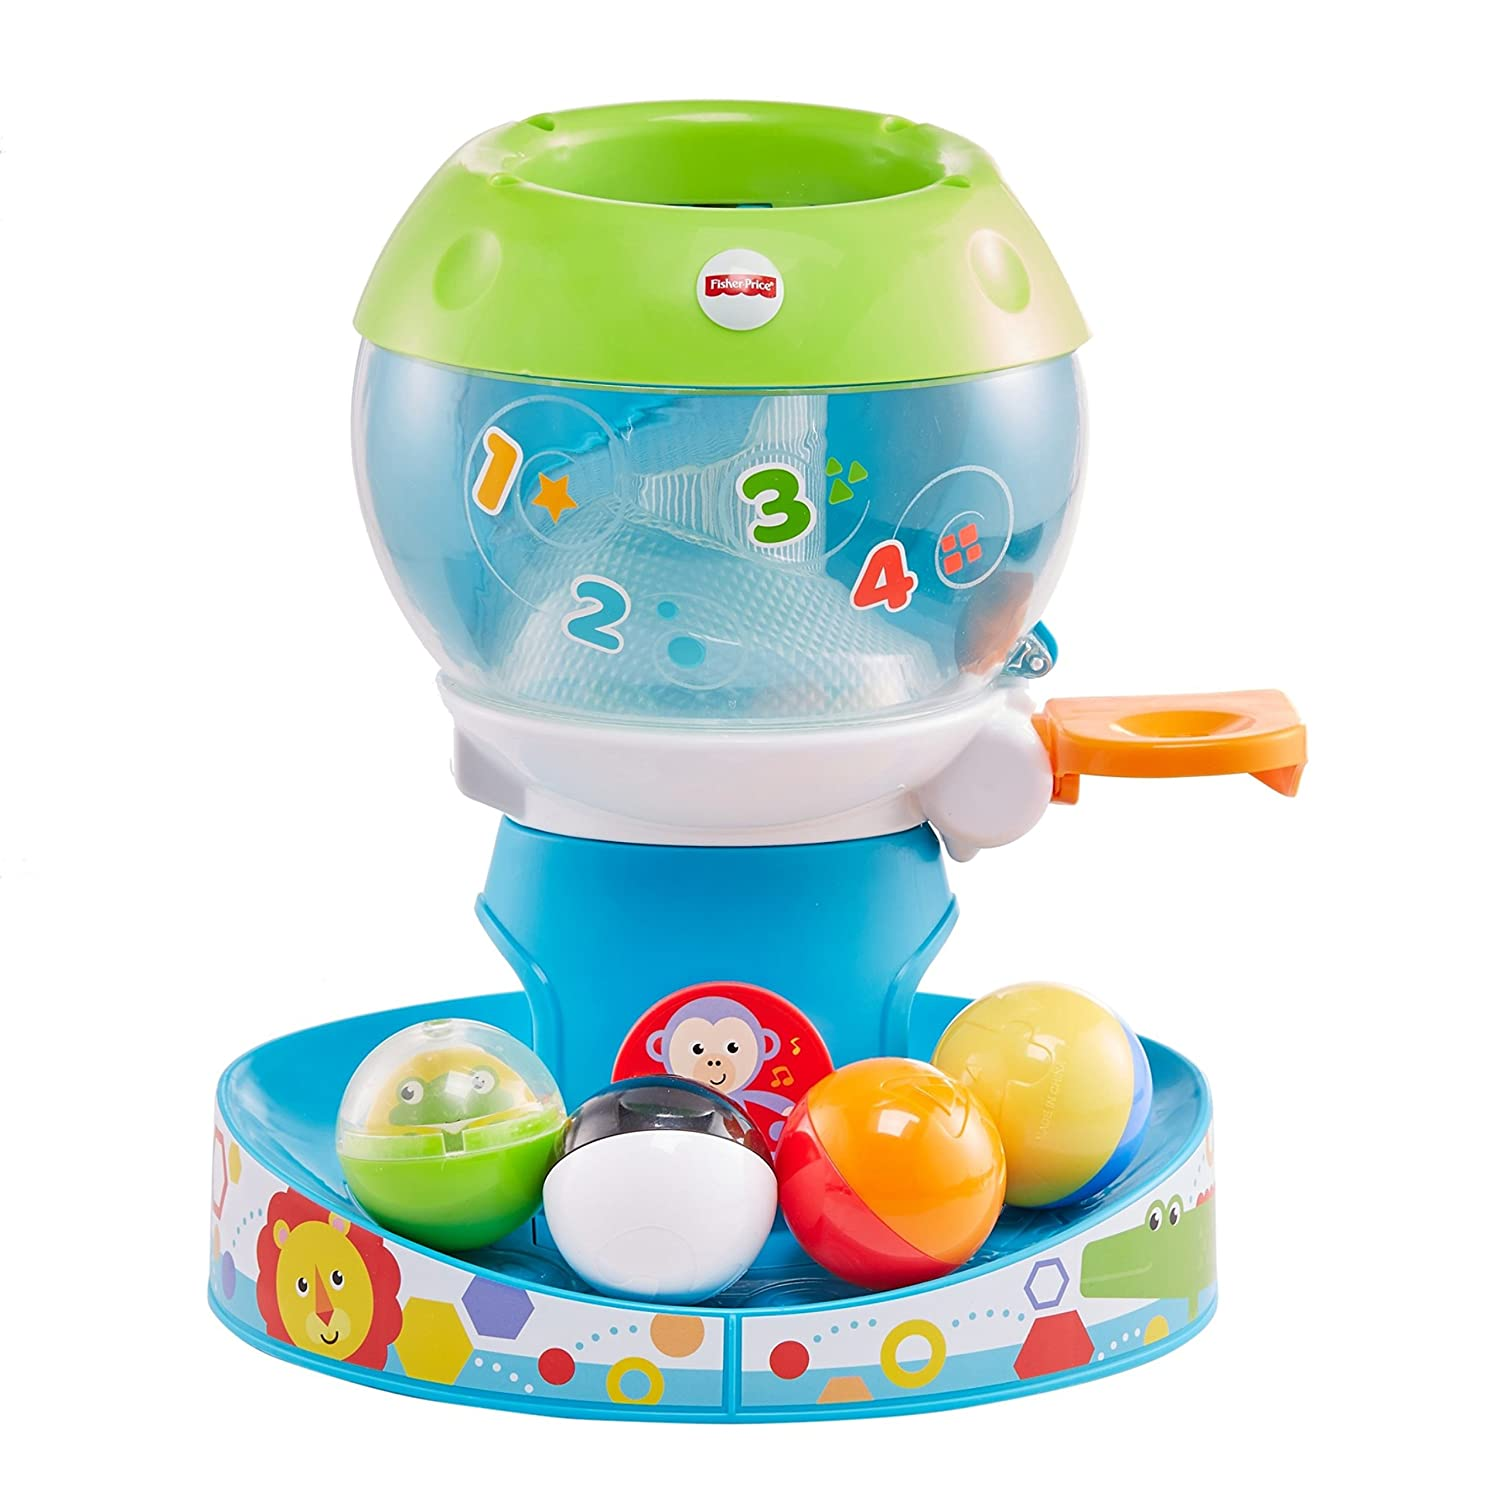 Amazon.com: Fisher-Price Baby Go Swirl \'n Tunes Gumball n, Multi ...